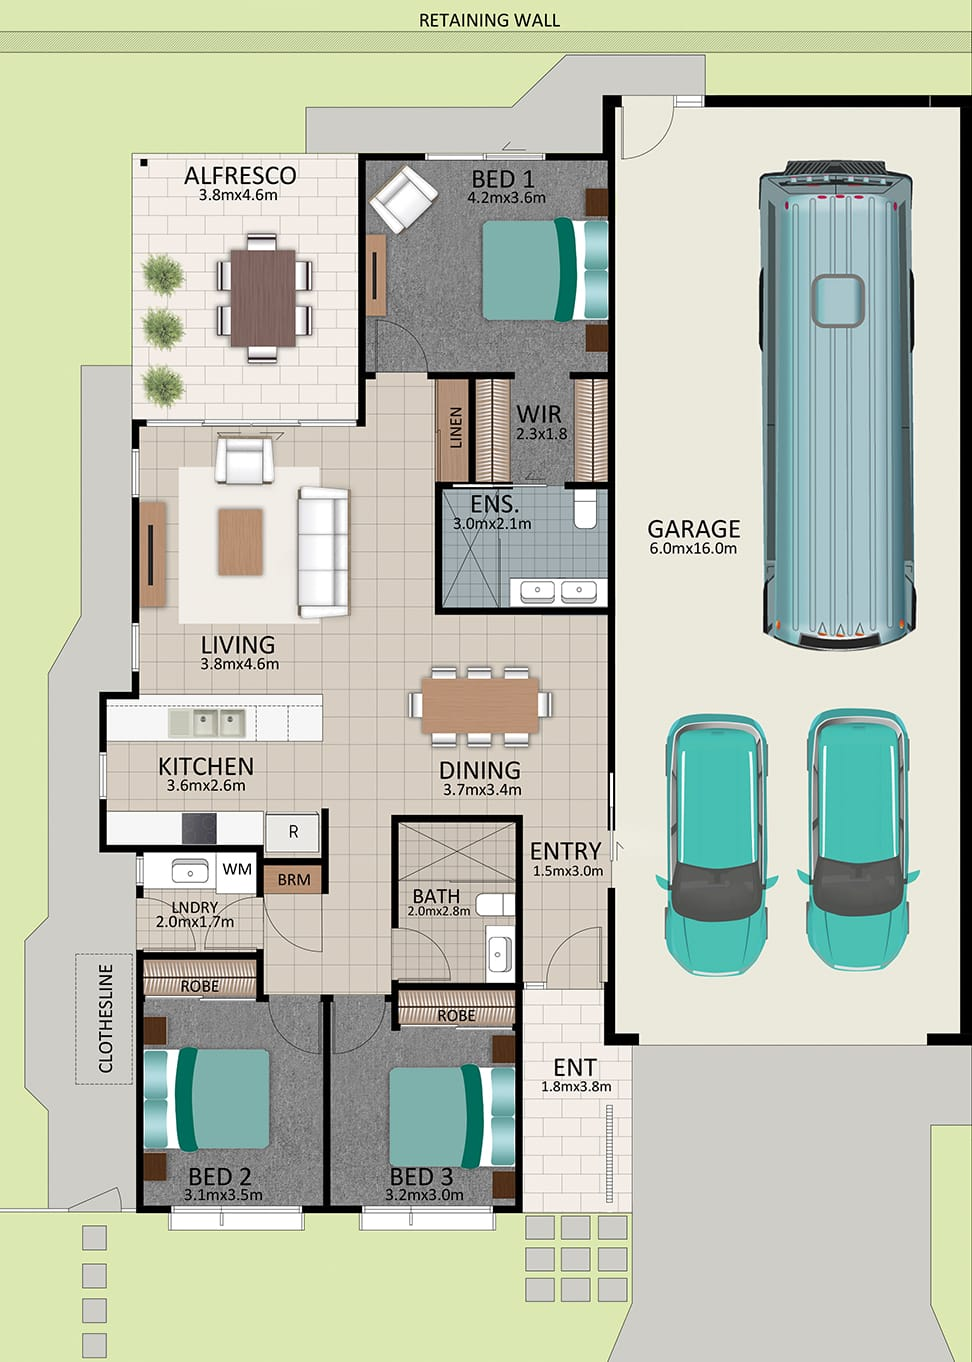 LR WEB LAT25 Floorplan LOT 174 Watson NOV19 V1 - Lot 174